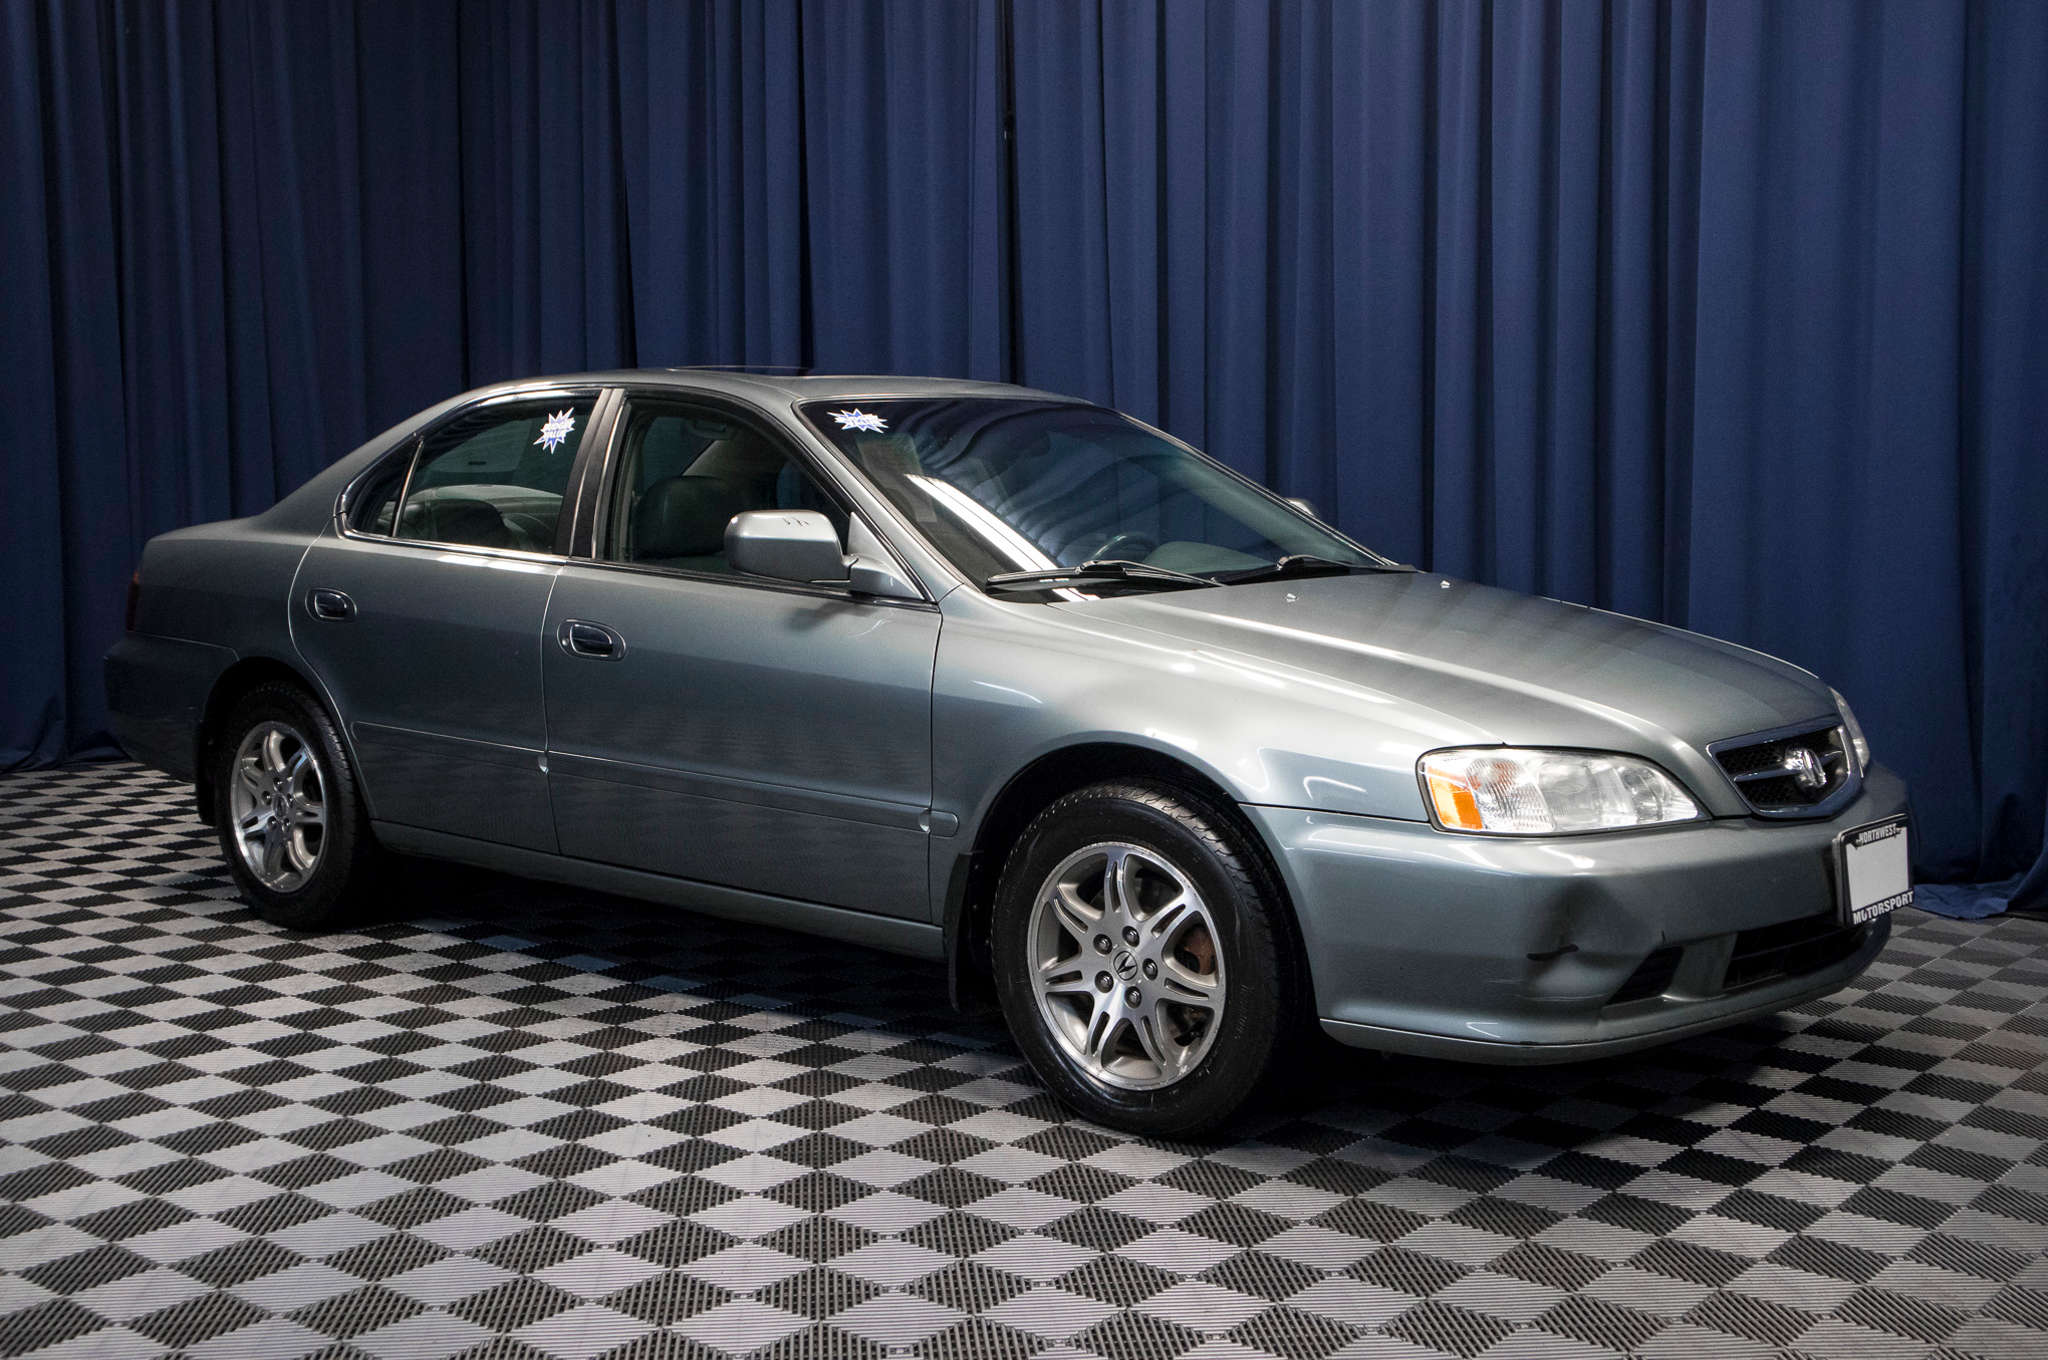 in white graham carfinder auctions online acura vehicle ownership tl on view wa cert left copart for titl of en sale auto lot